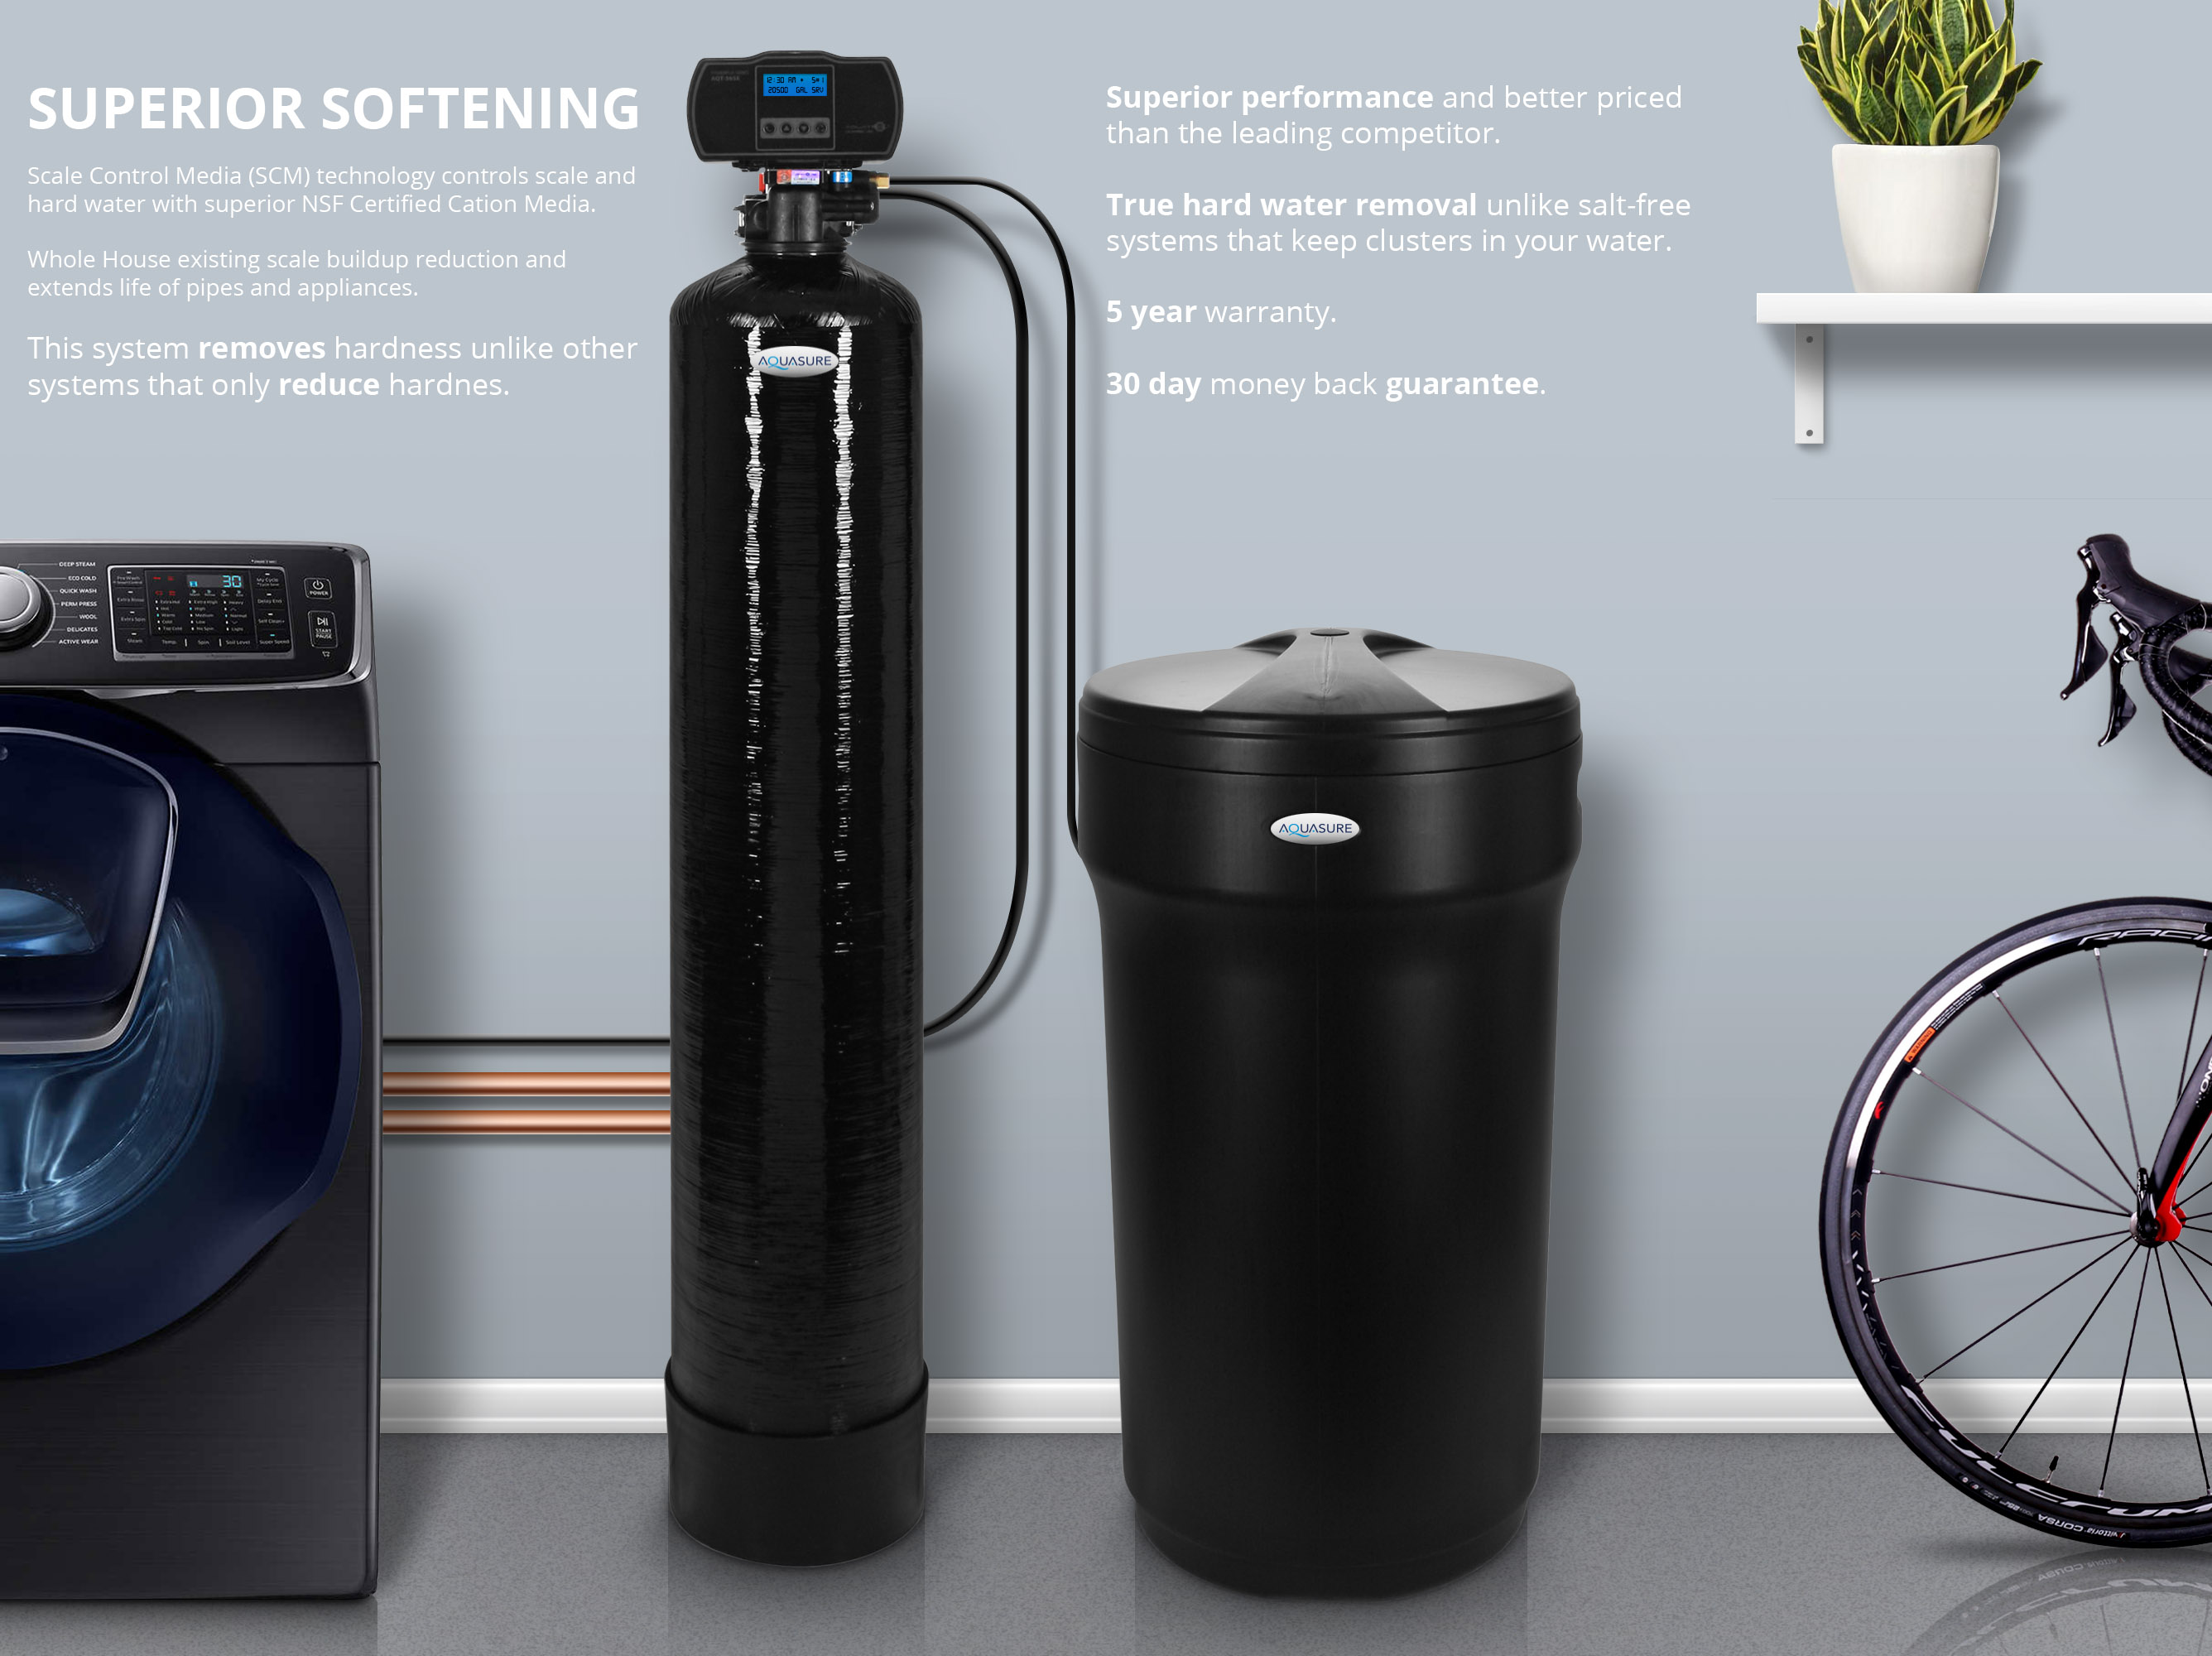 Aquasure Water Softener System Whole House Digital 2 4 Bathrooms